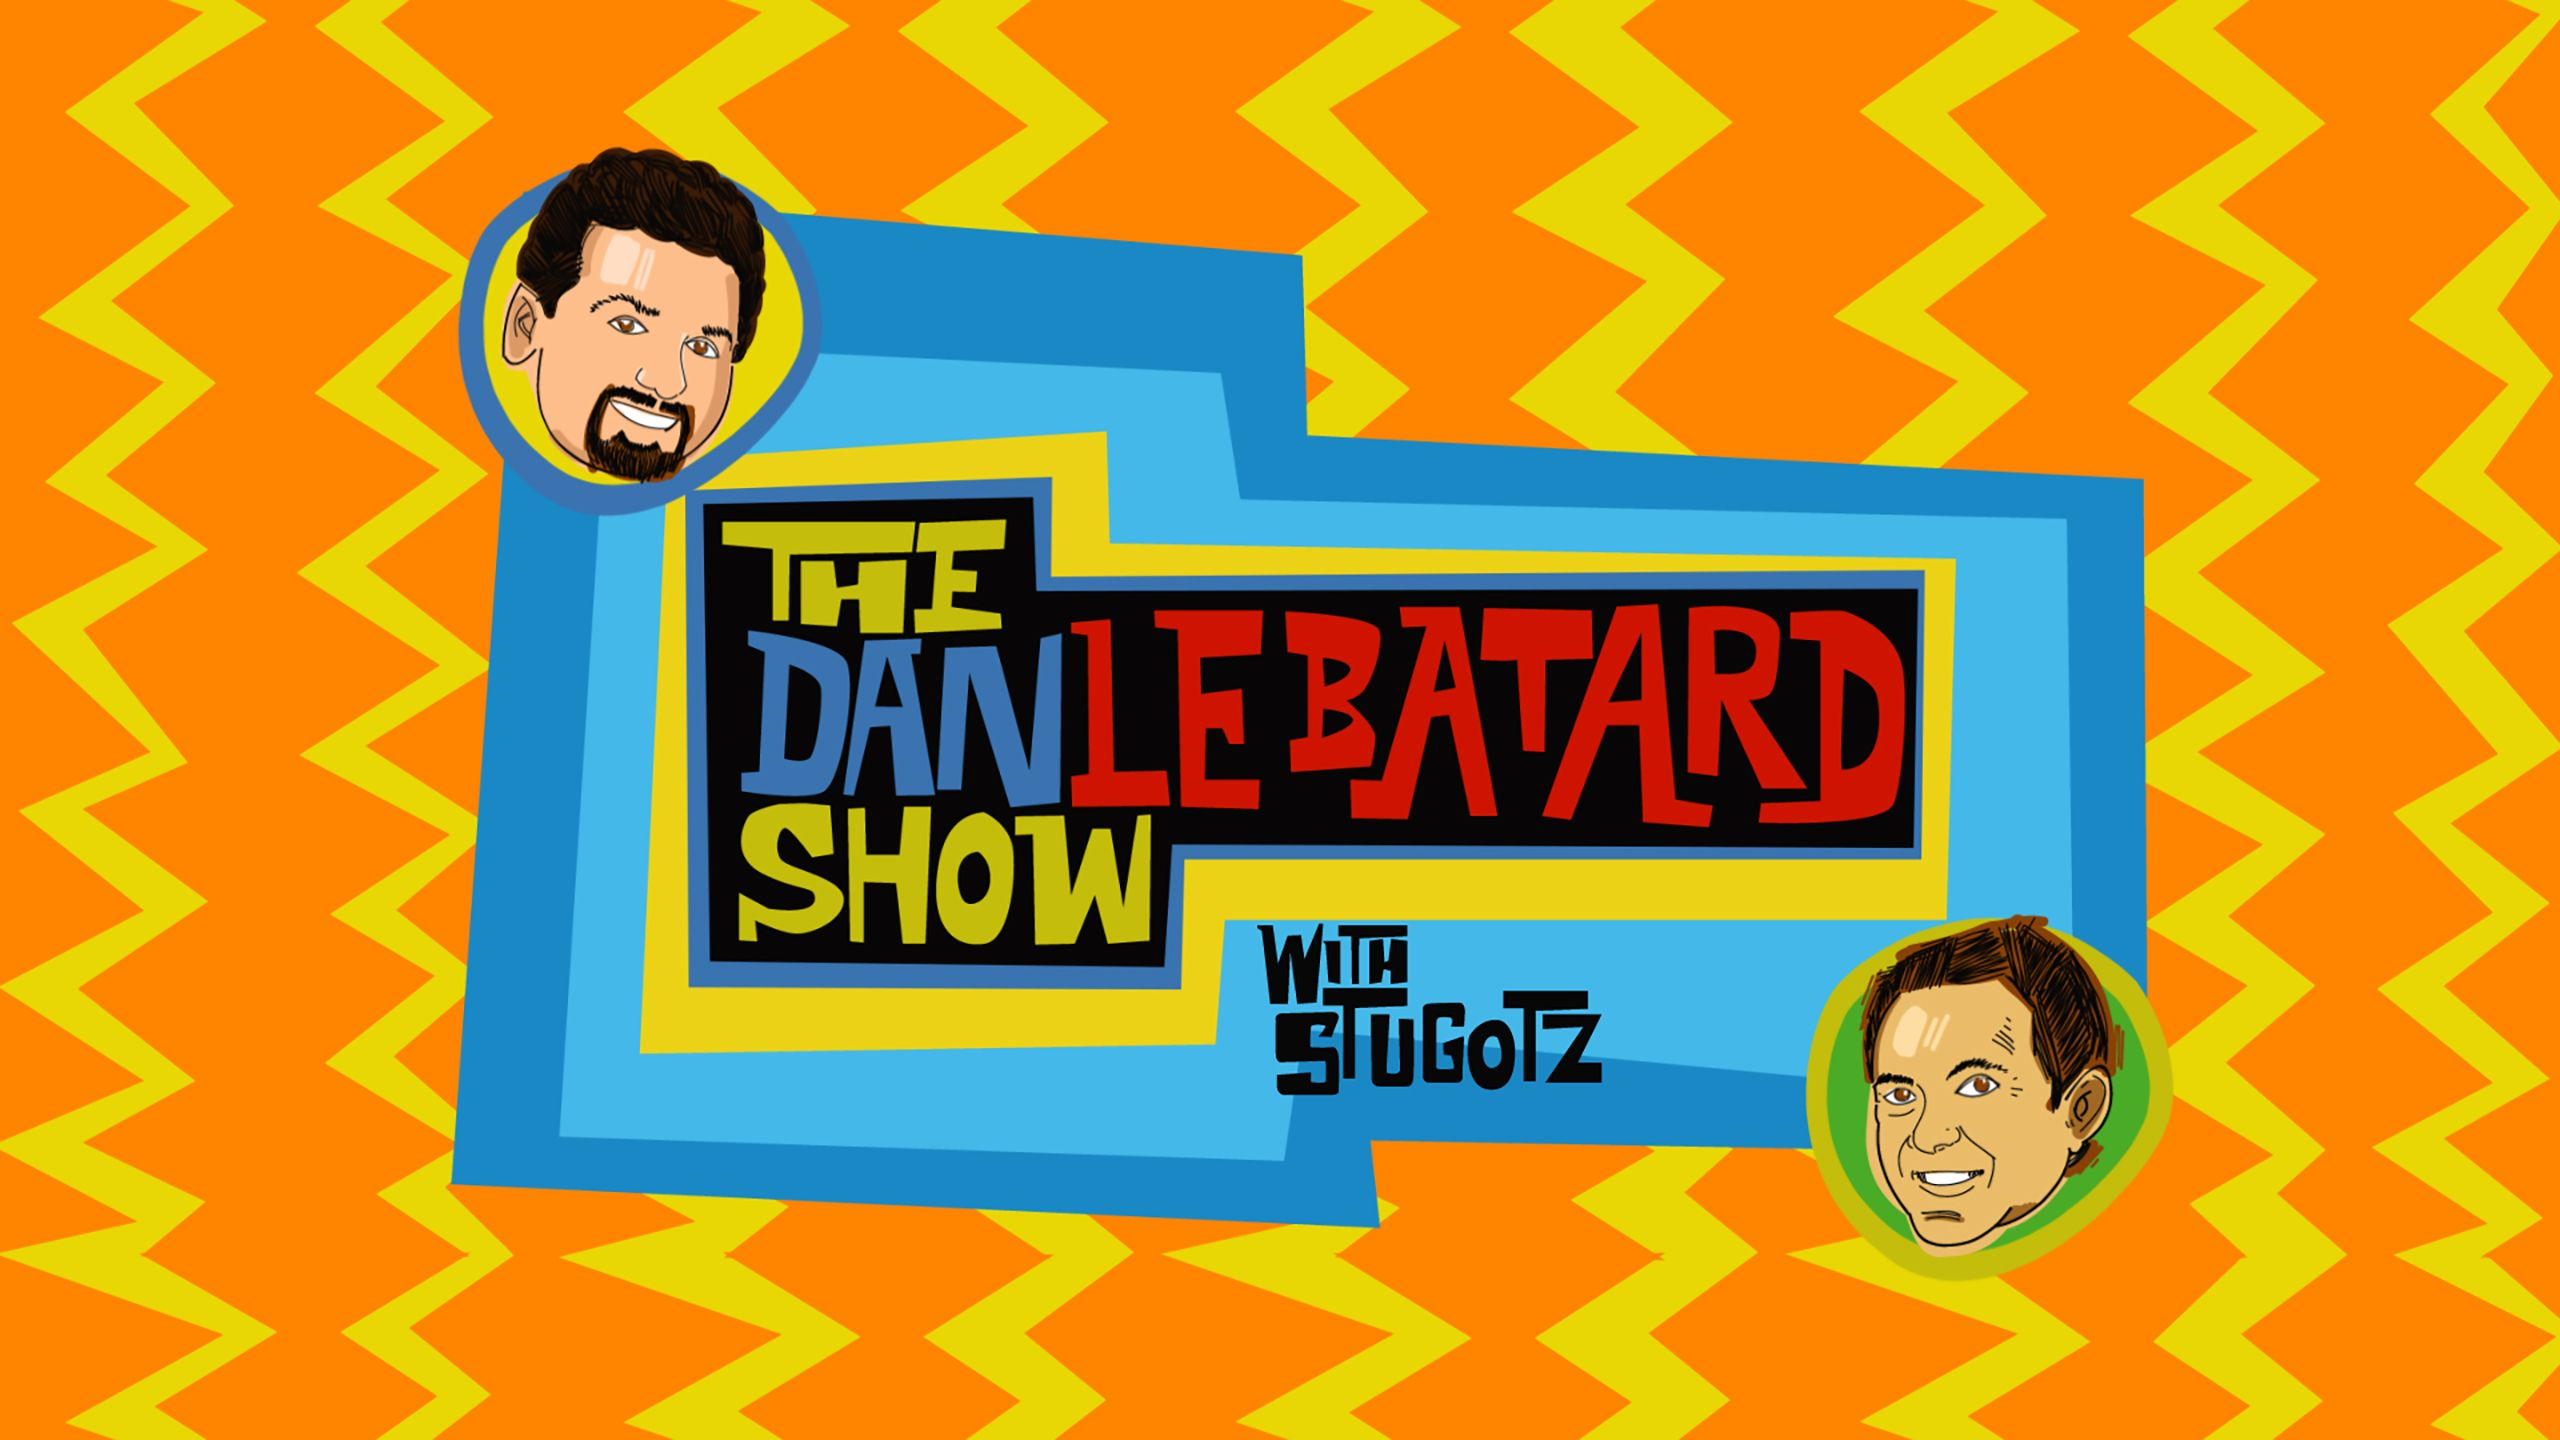 Fri, 10/20 - The Dan Le Batard Show with Stugotz Presented by Progressive